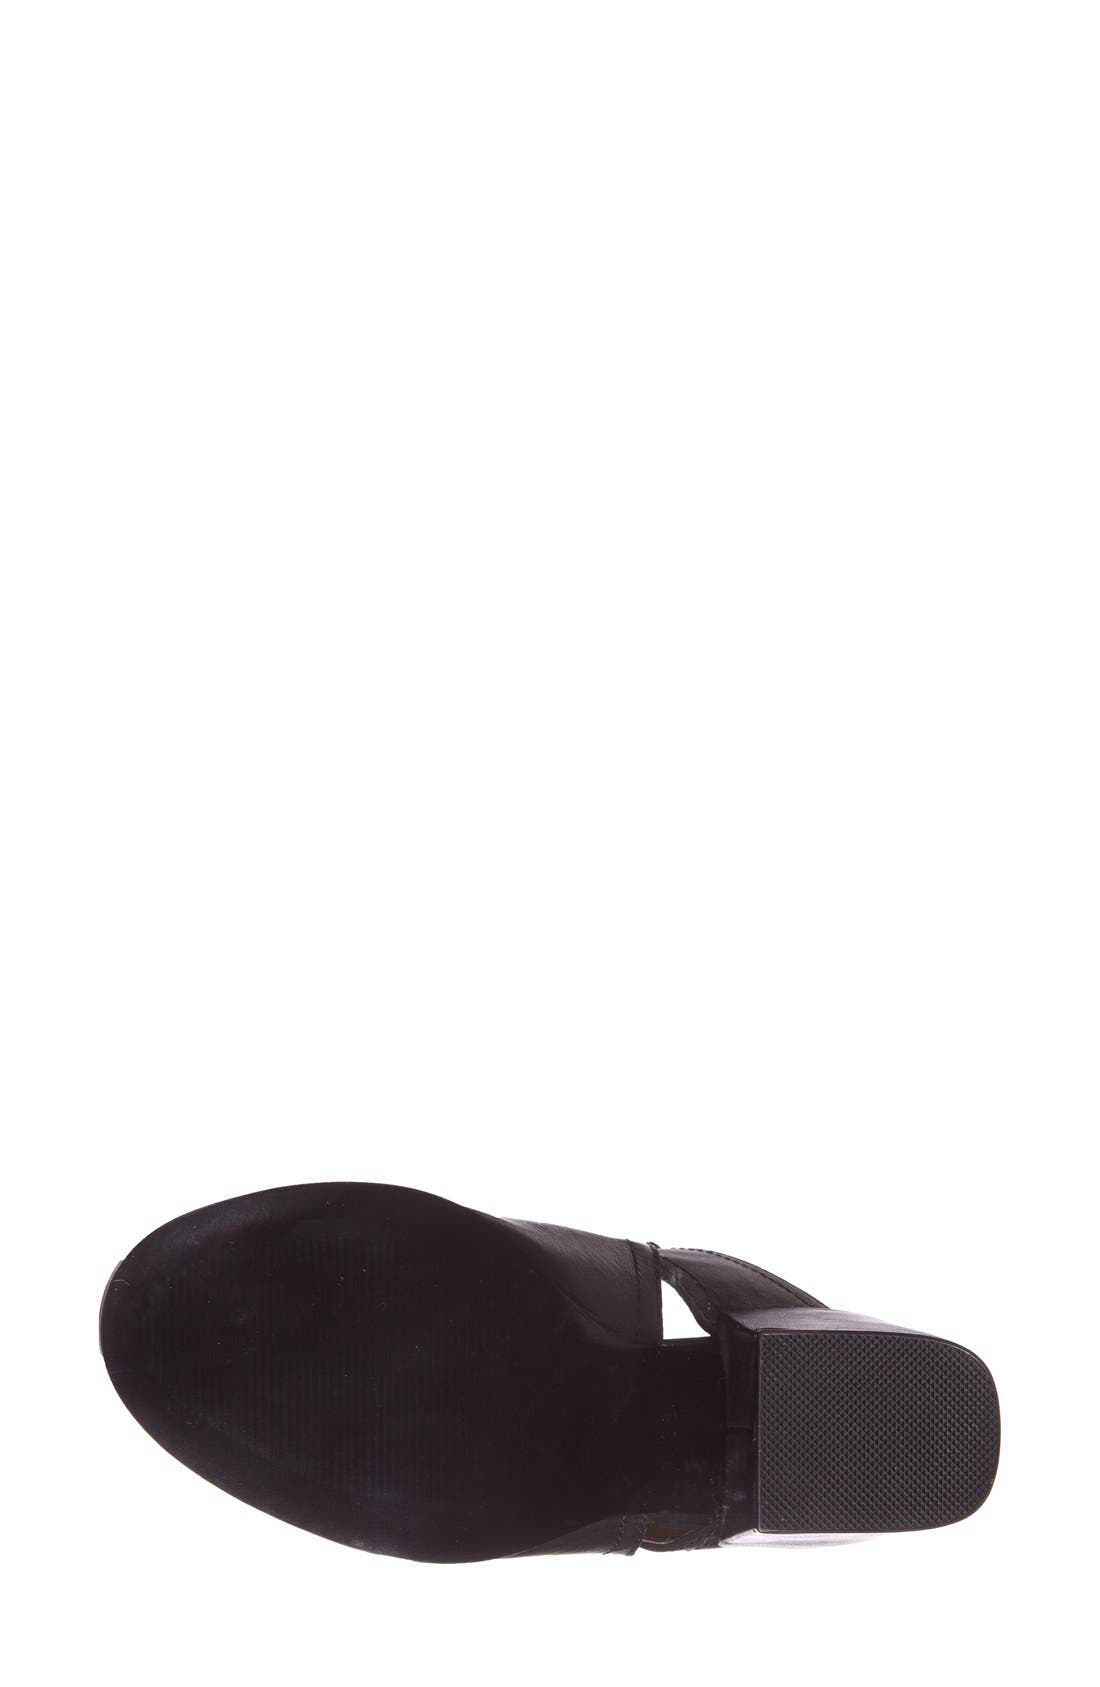 SIXTYSEVEN, 'Polly' Open Toe Bootie, Alternate thumbnail 2, color, 001